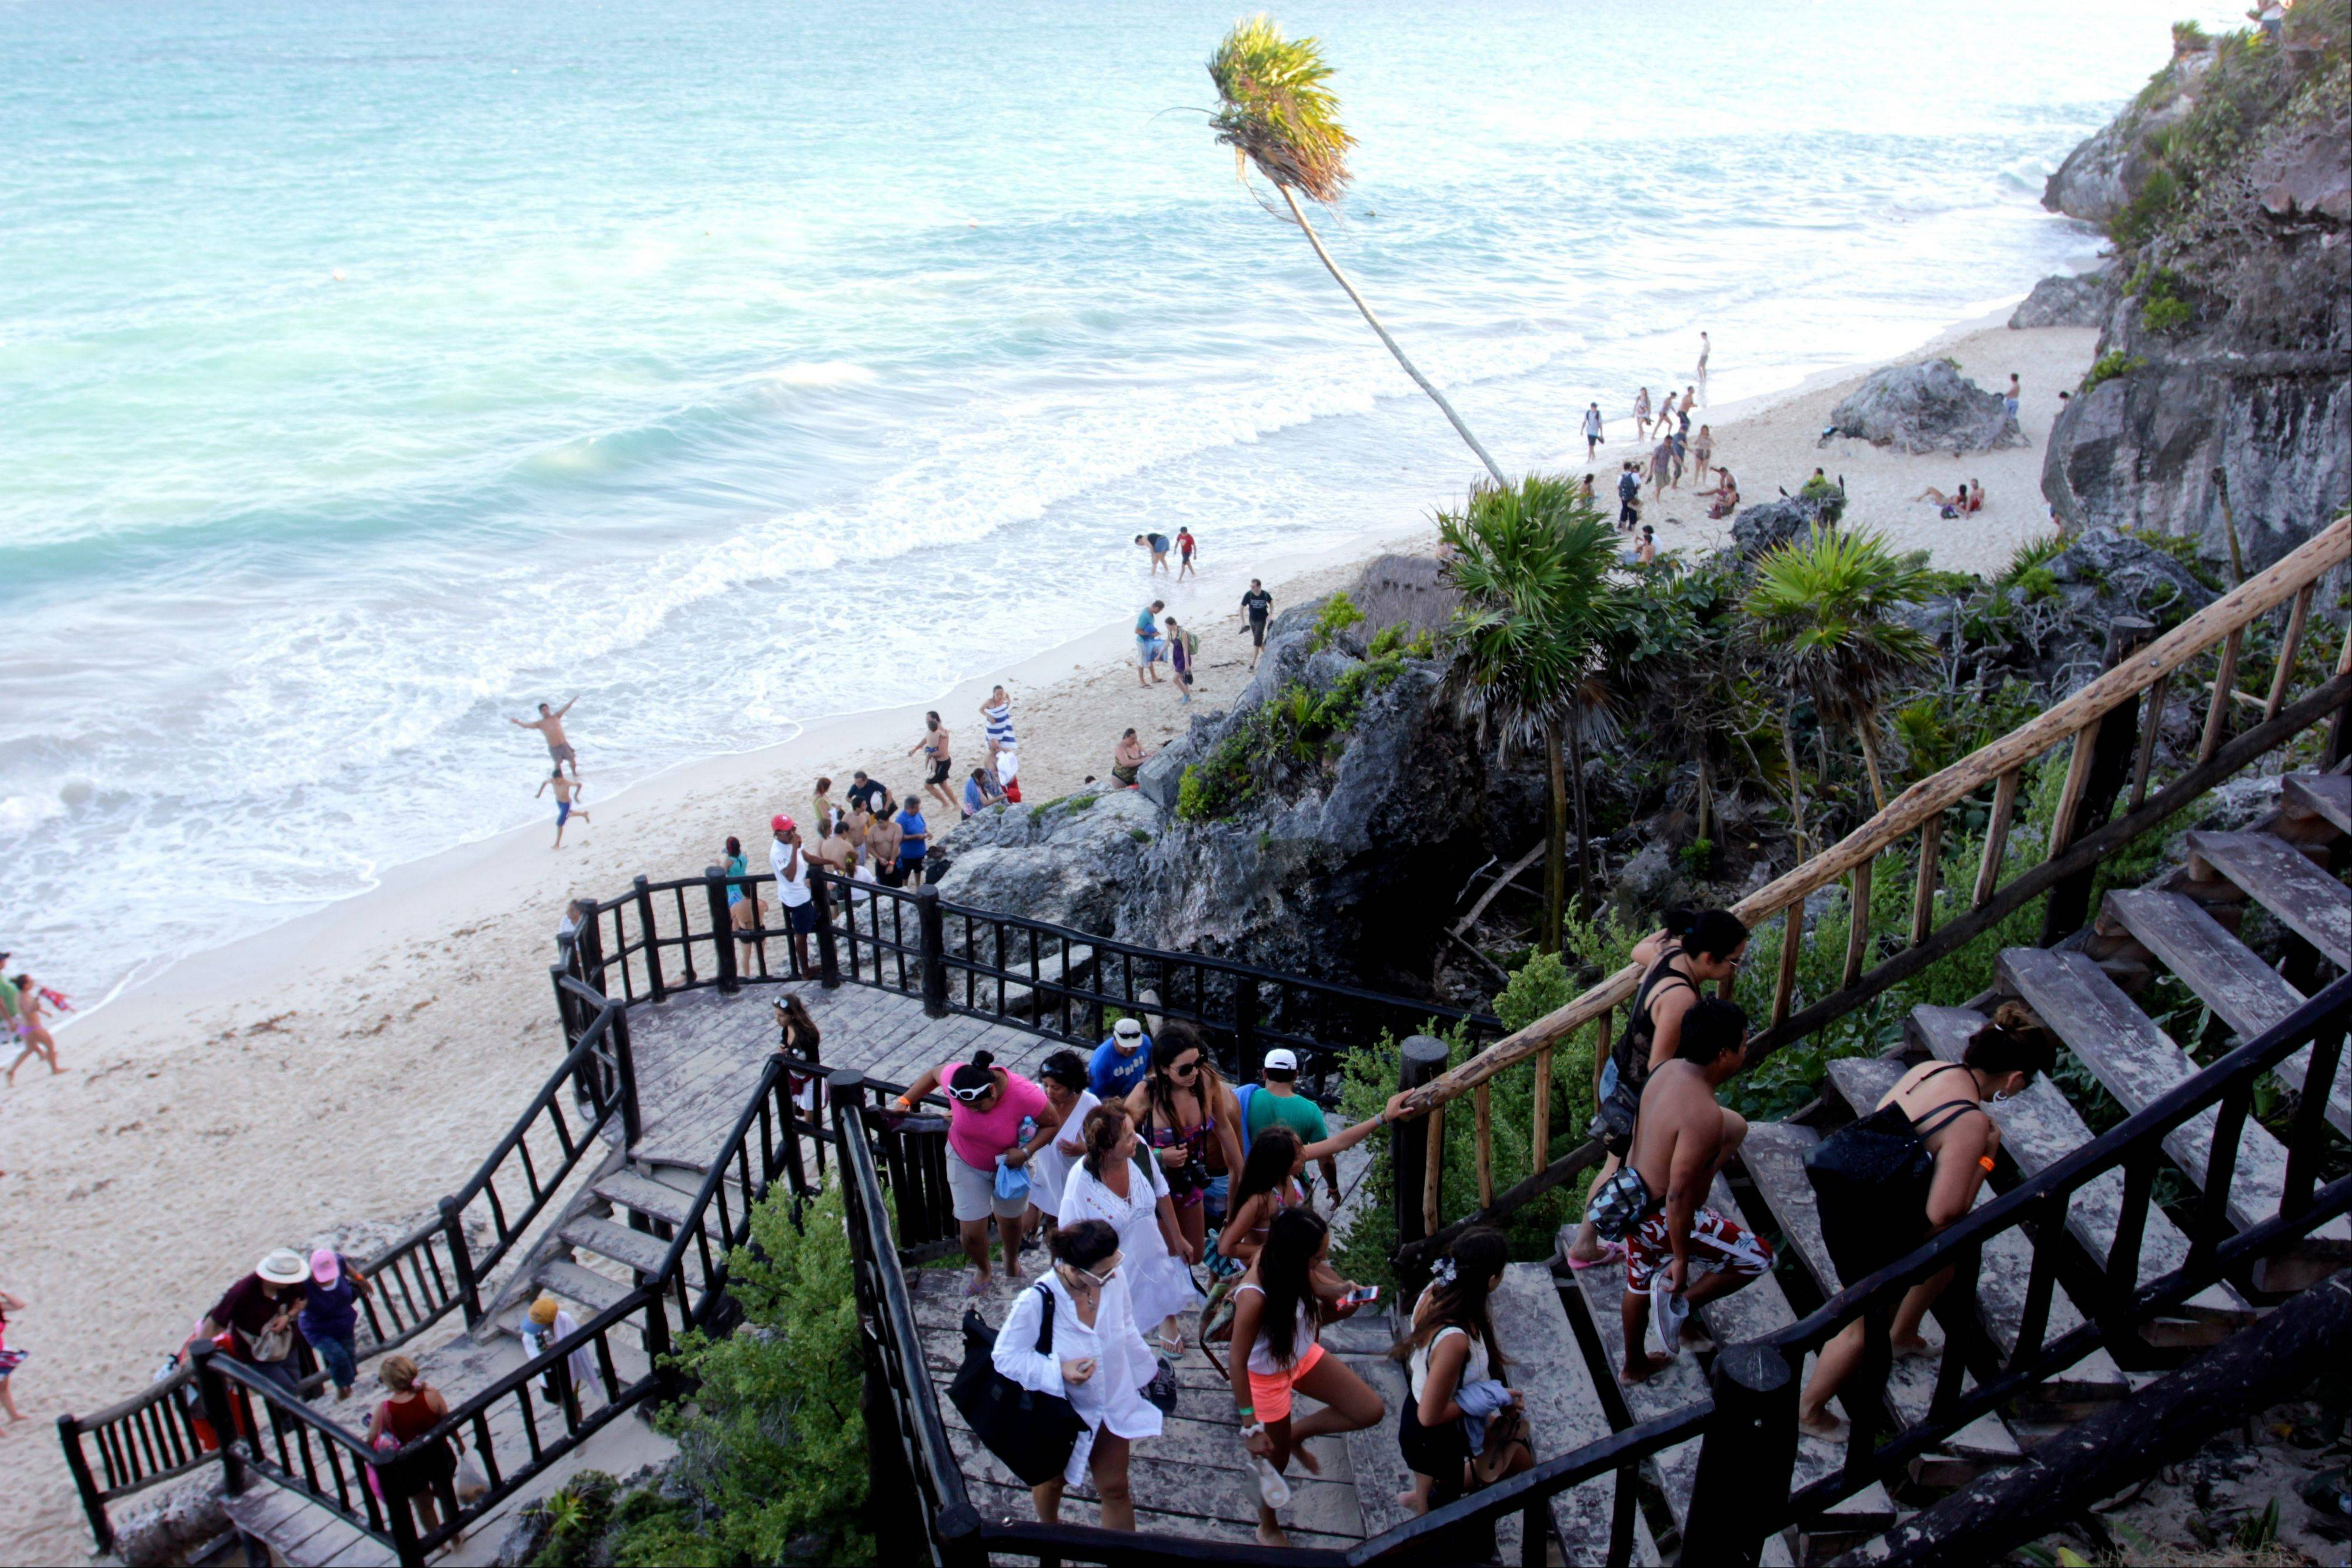 A line of people leave the swimming beach next to the Mayan ruins in Tulum.